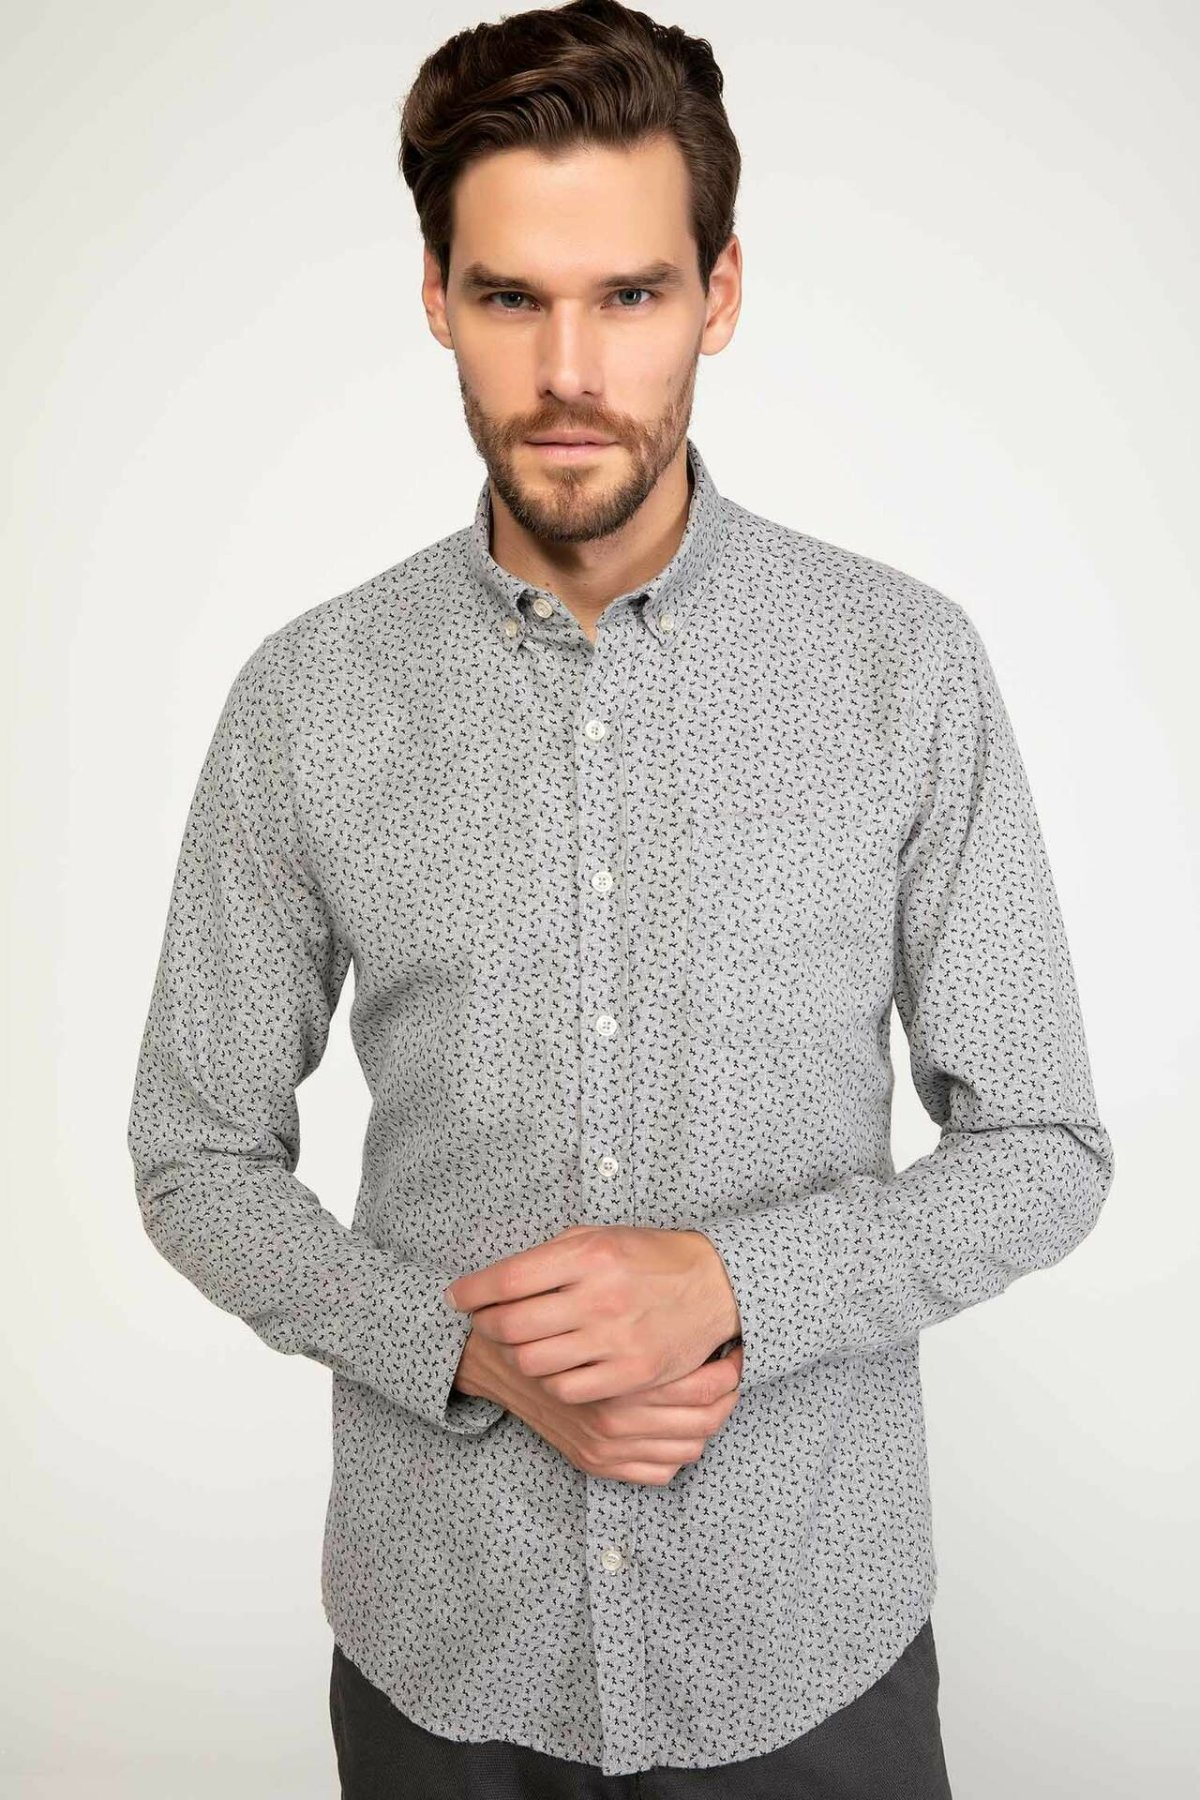 DeFacto Man Casual Prints Cotton Shirts Men's Turn-down Collar Light Grey Long Sleeve Top Shirt-J1424AZ18WN